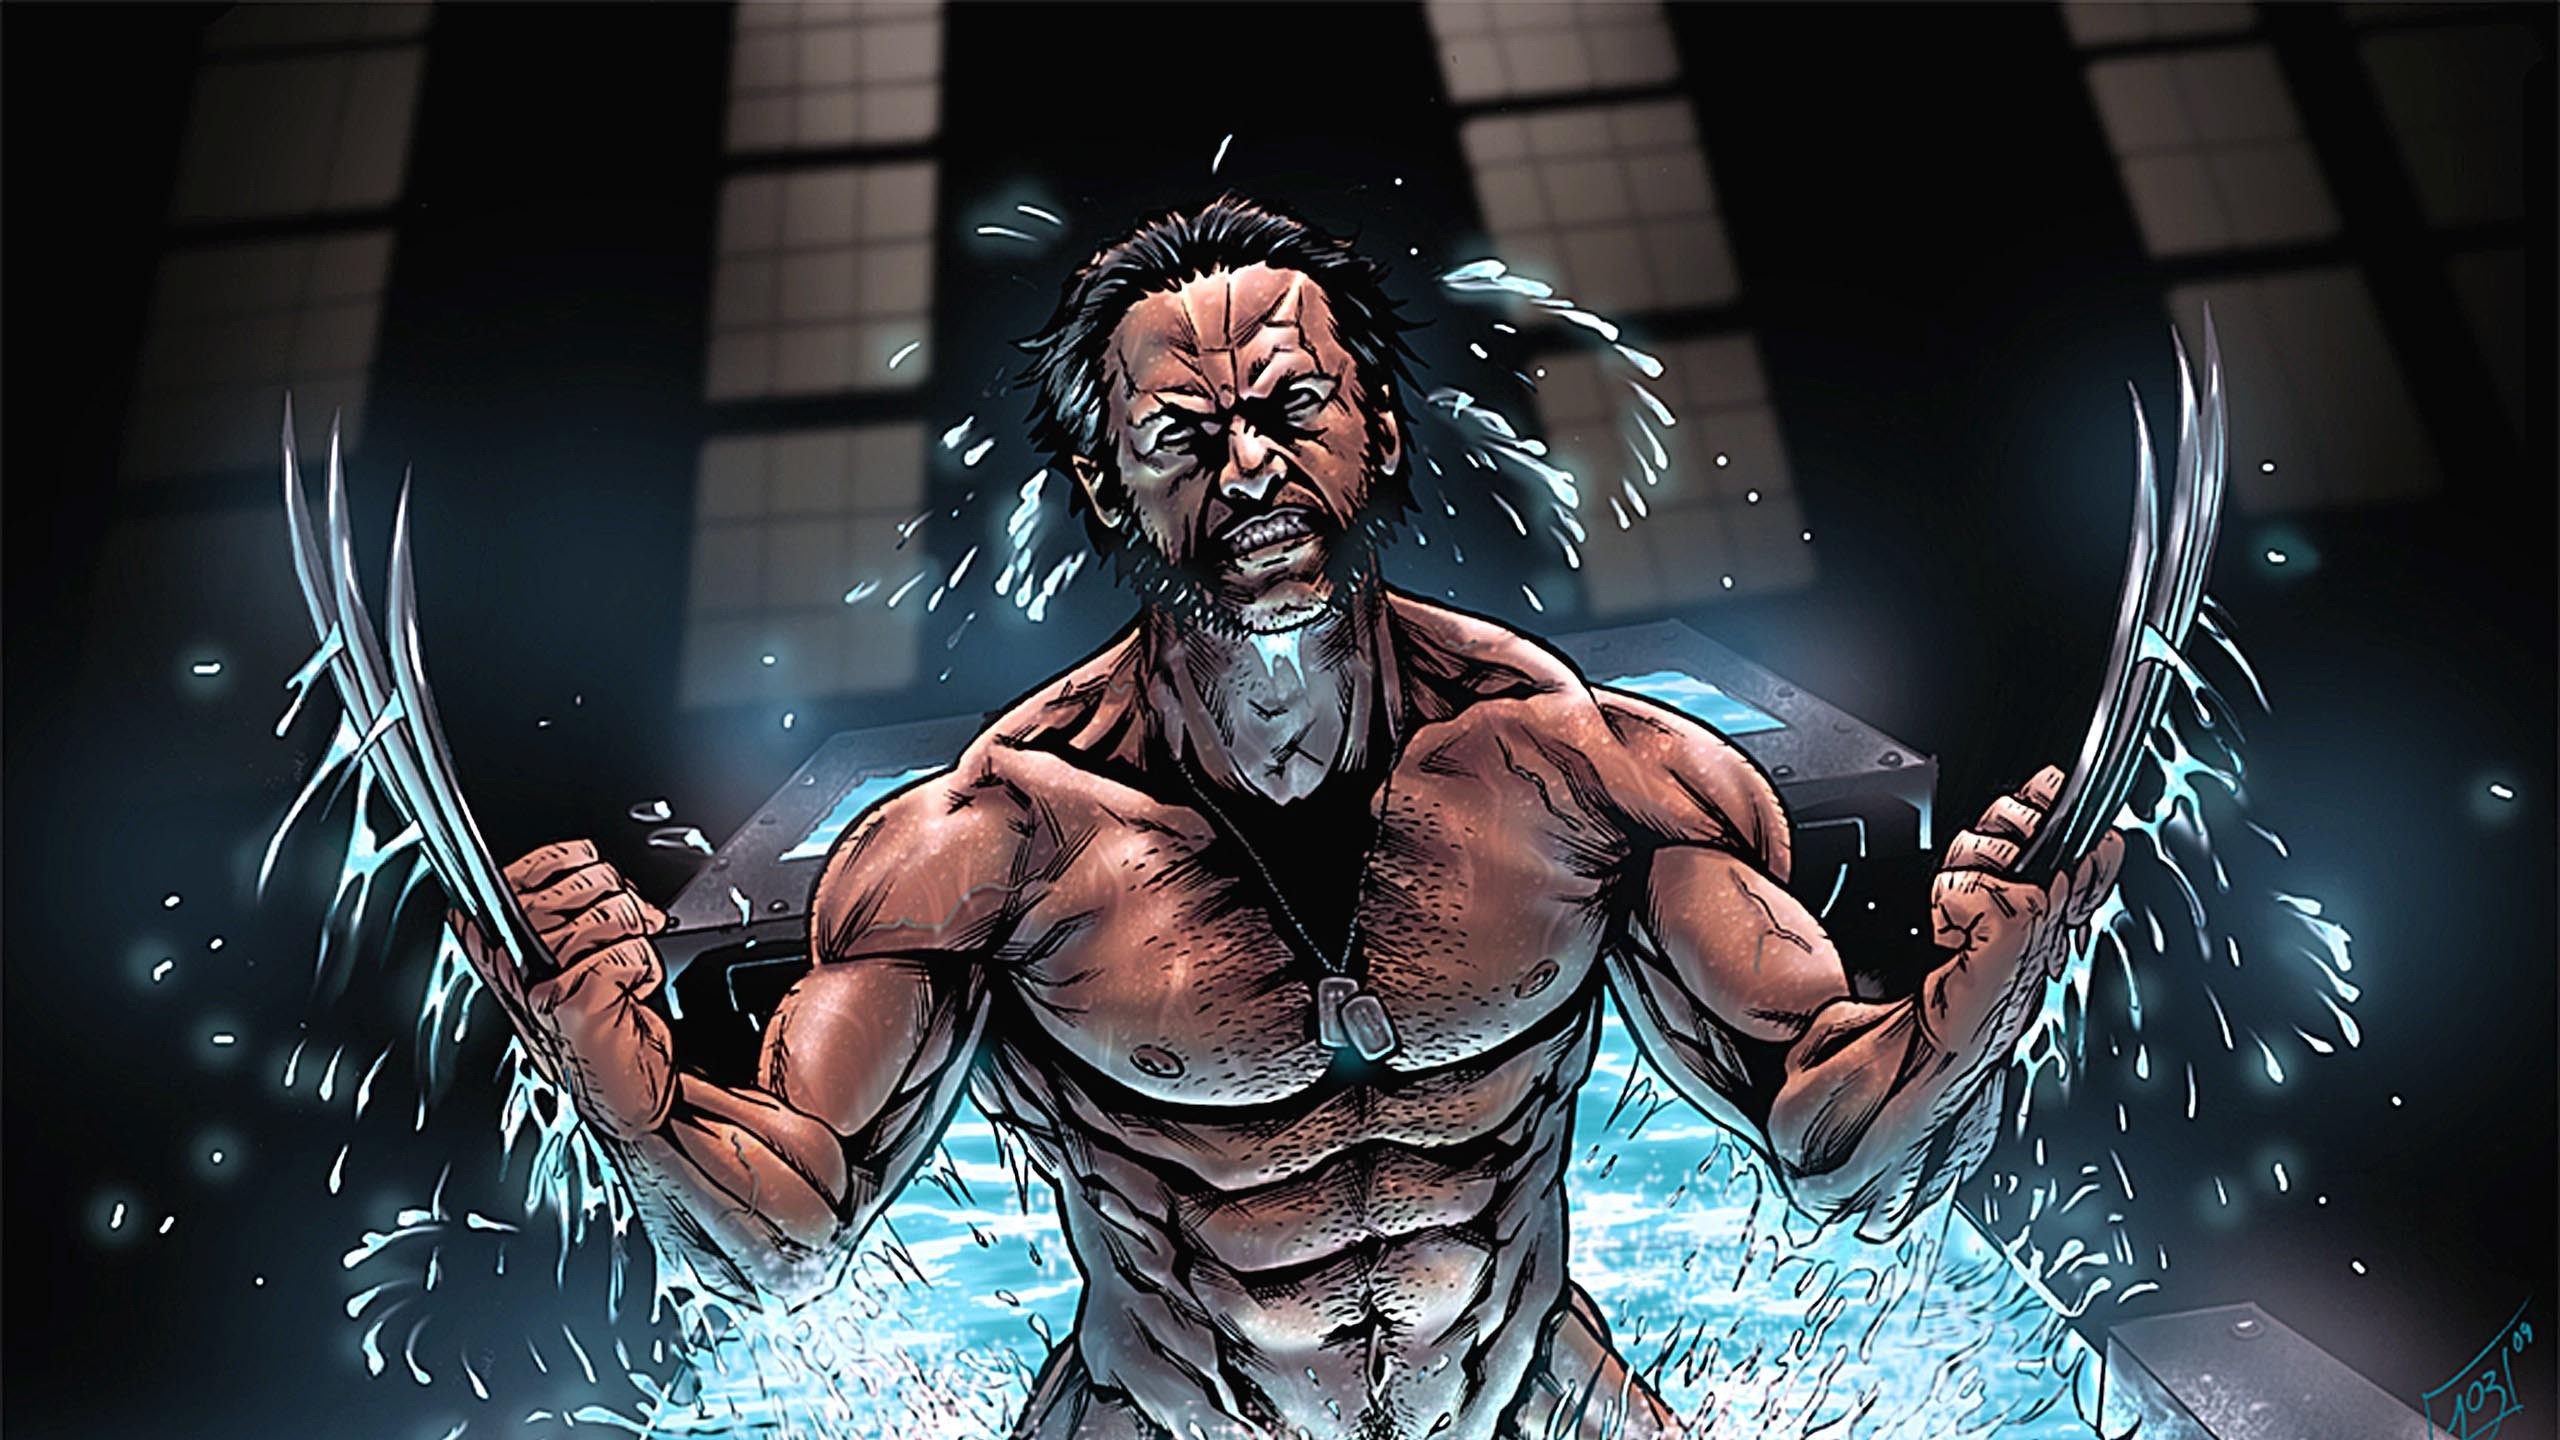 Res: 2560x1440, Gallery of Wolverine Backgrounds, Wallpapers SH wolverine wallpapers  wallpapermonkey Wolverine Wallpaper